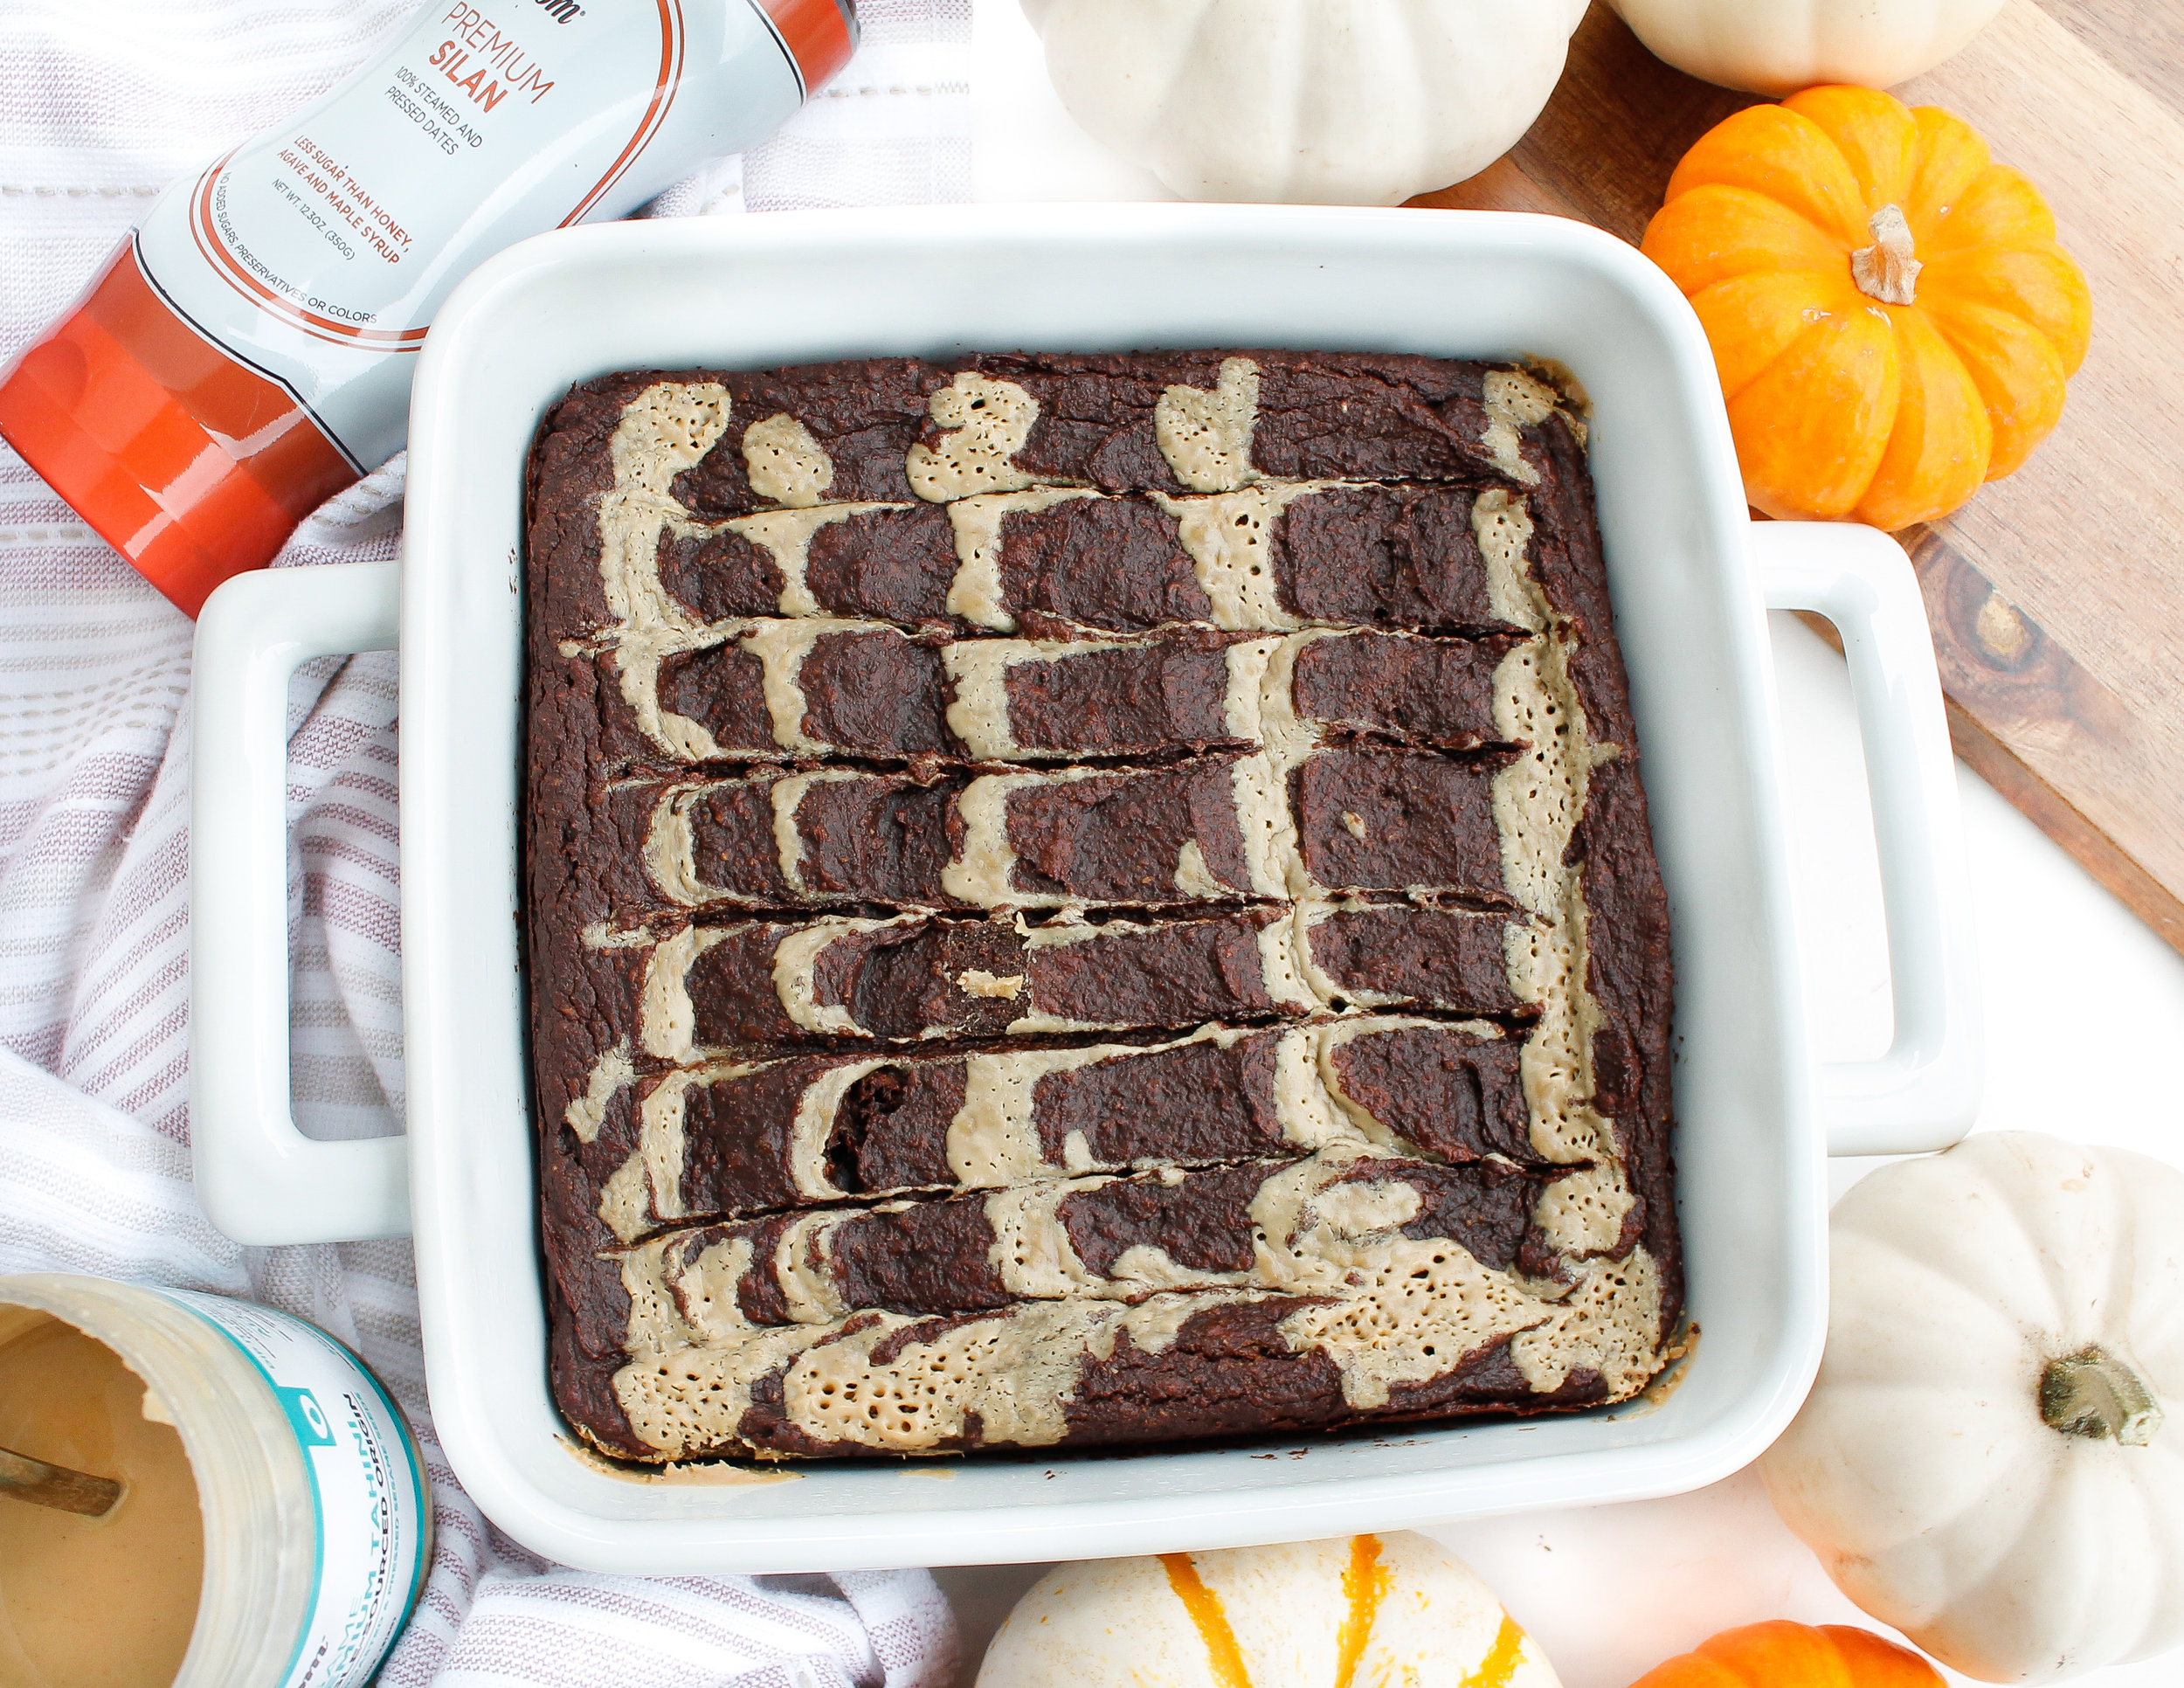 Paleo + Vegan Pumpkin Tahini Brownies || These brownies are grain free, vegan, gluten free AND refined sugar free! They're packed with nutrients from ingredients like pumpkin, raw cacao, tahini and almond flour, so you can have your brownies and eat them too! The perfect healthy dessert when you want to nourish your body and satisfy your sweet tooth. #paleovegan #paleobrownies #paleopumpkinbrownies #veganbrownies #veganpumpkinbrownies #pumpkinbrownies